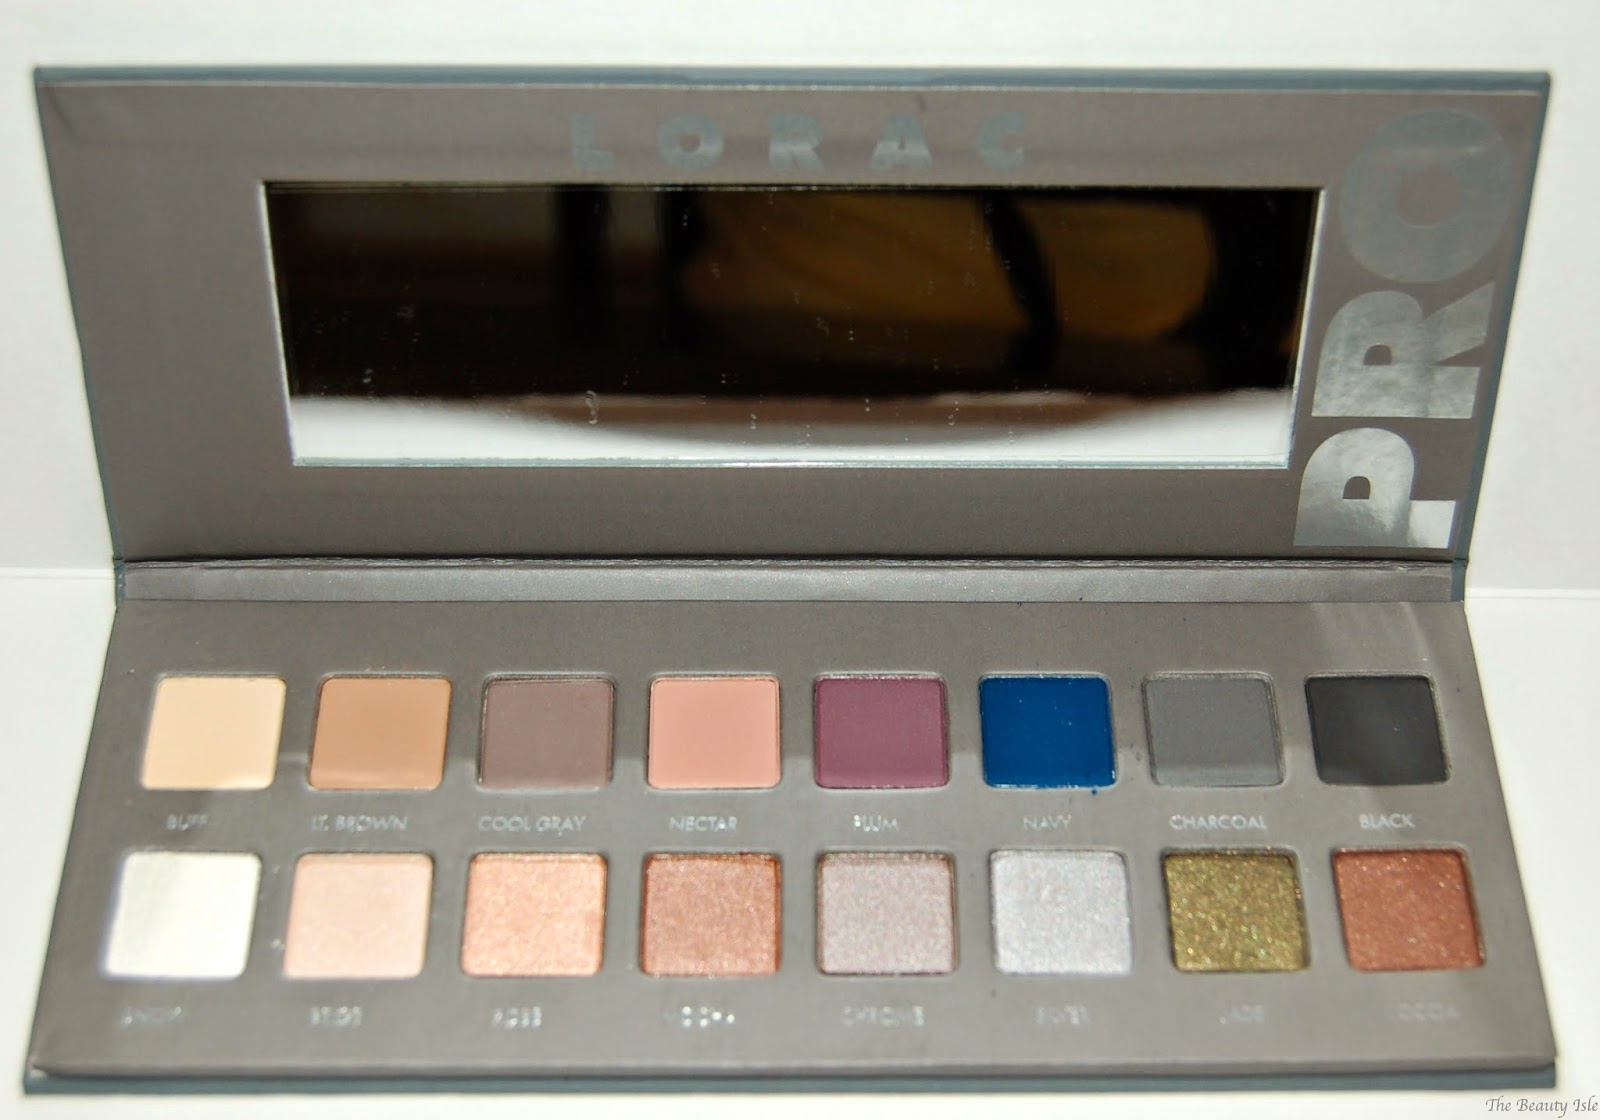 Lorac pro palette 2 review tutorials the beauty isle the packaging of the lorac pro palette 2 is thin and it has a magnetic closure the material reminds me of the soft rubberized feel of nars packaging baditri Gallery